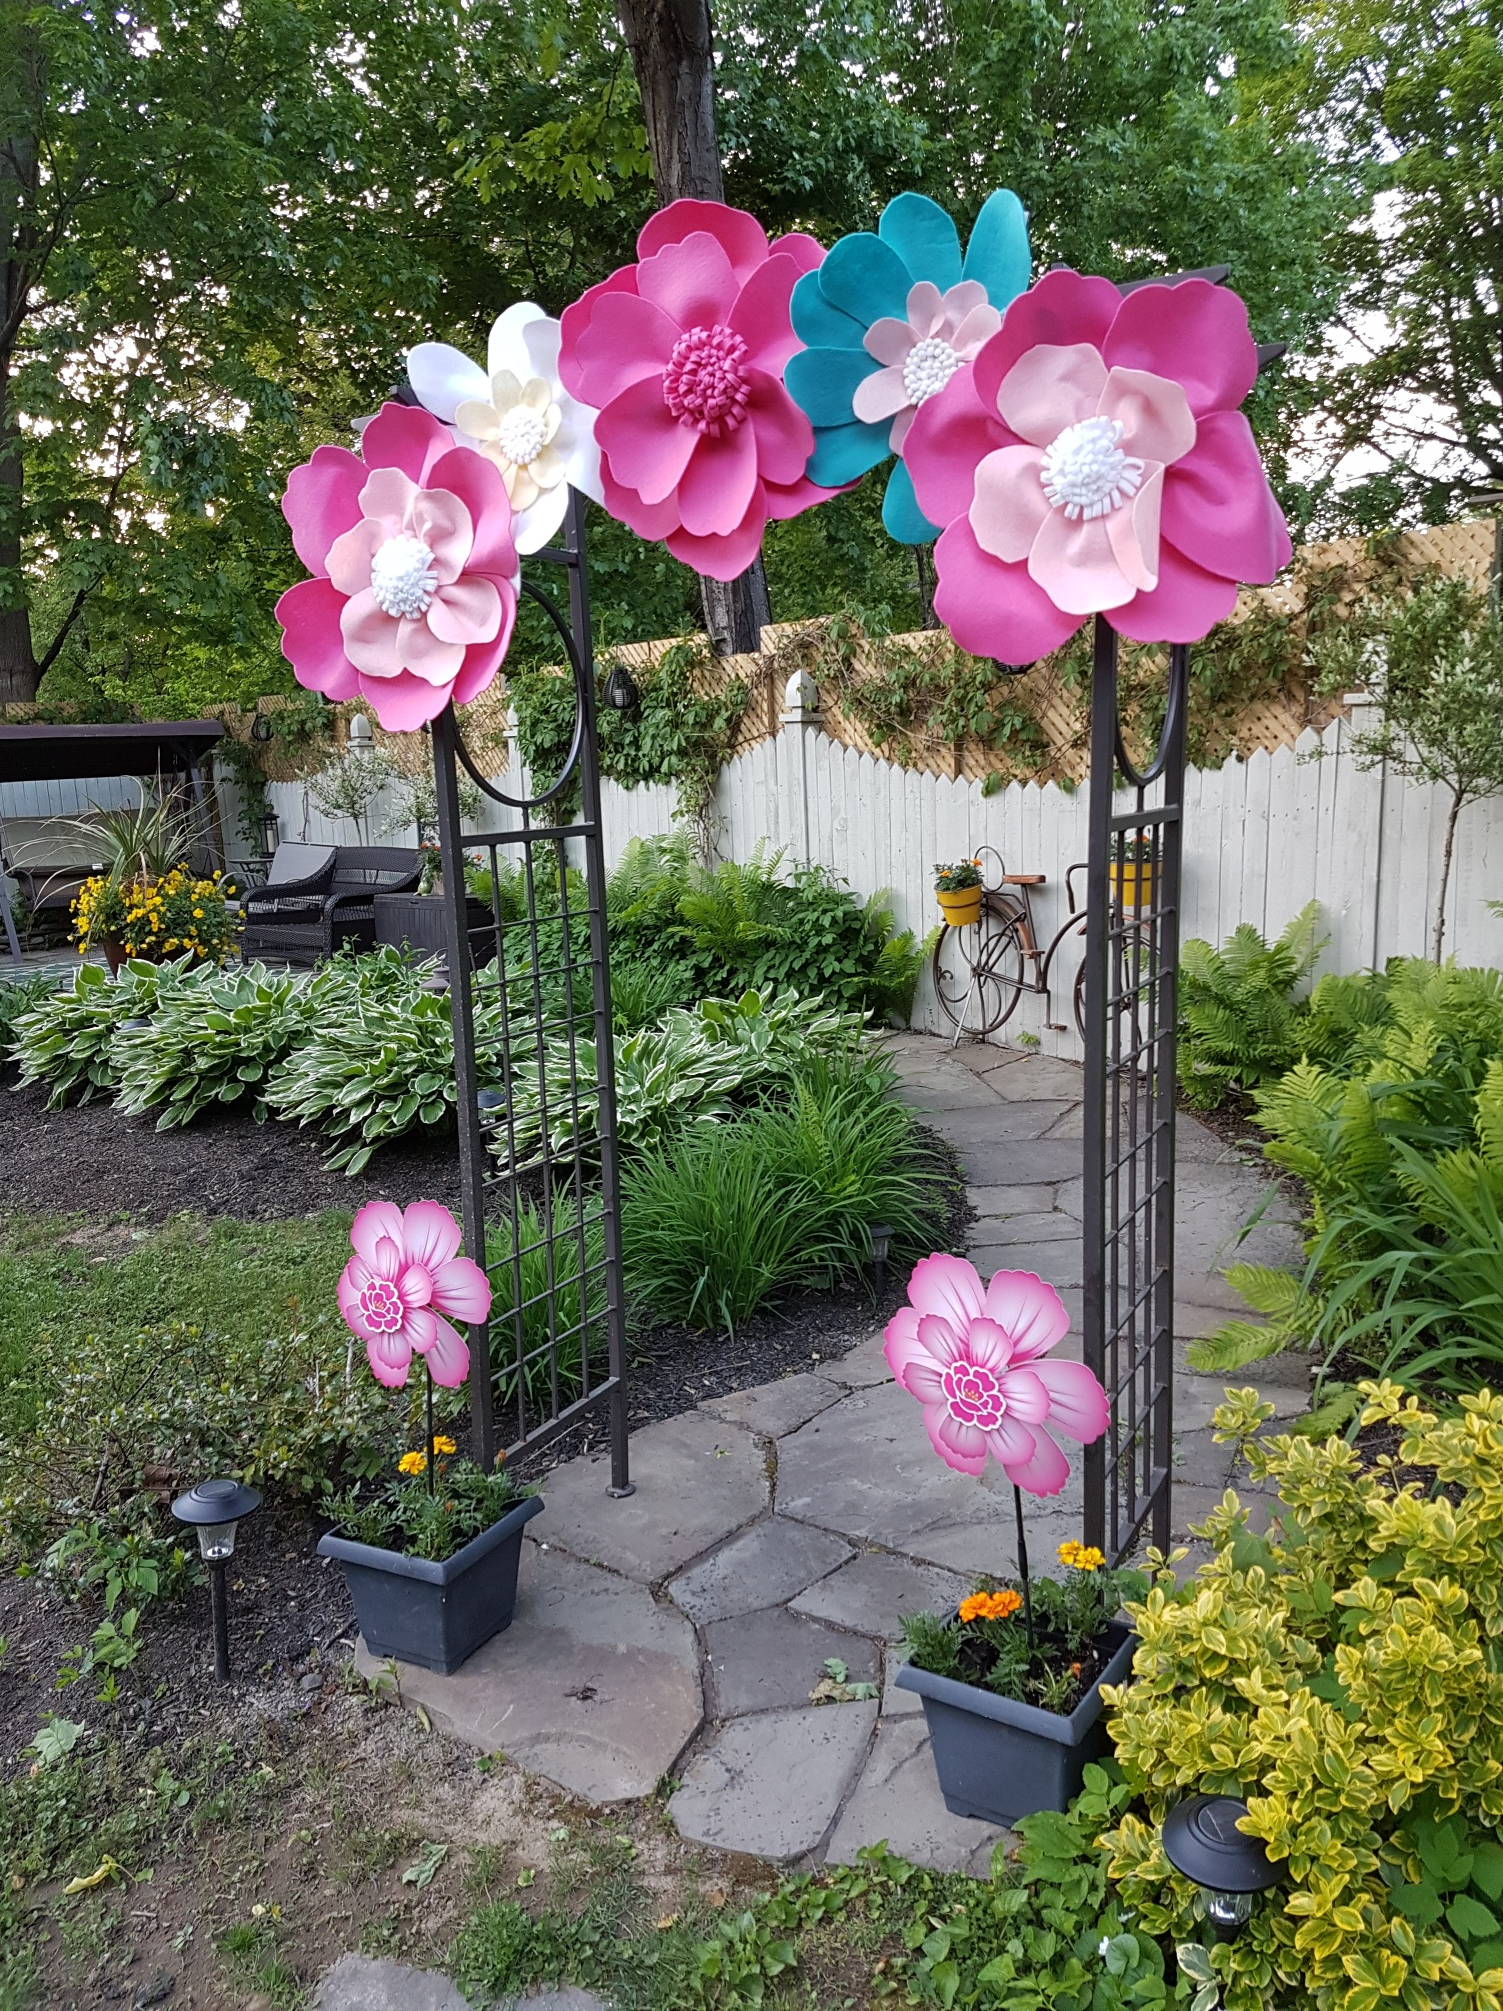 6d3570d5d48 One of my granddaughters just celebrated her third birthday. I used pea pod  trim to make centers for giant felt flowers. I also used the trim in some  of the ...